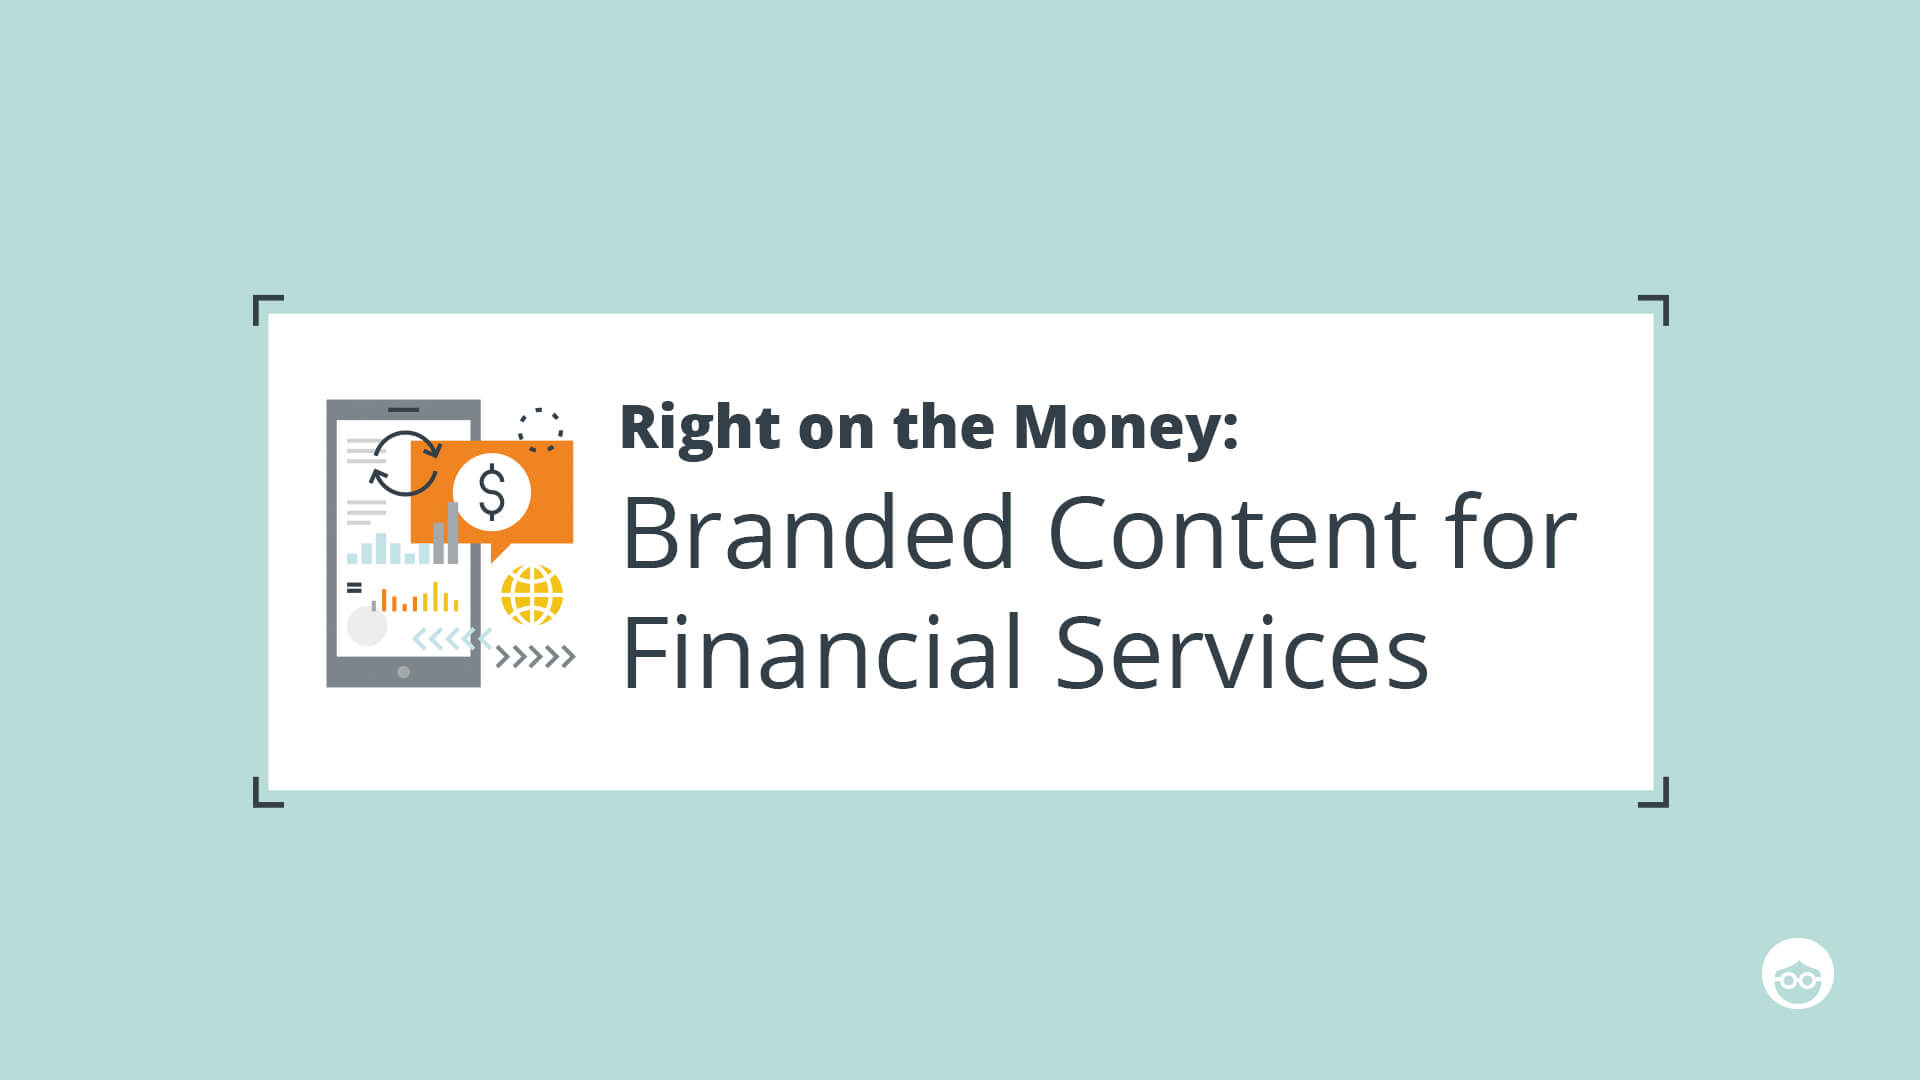 Branded Content for Financial Services